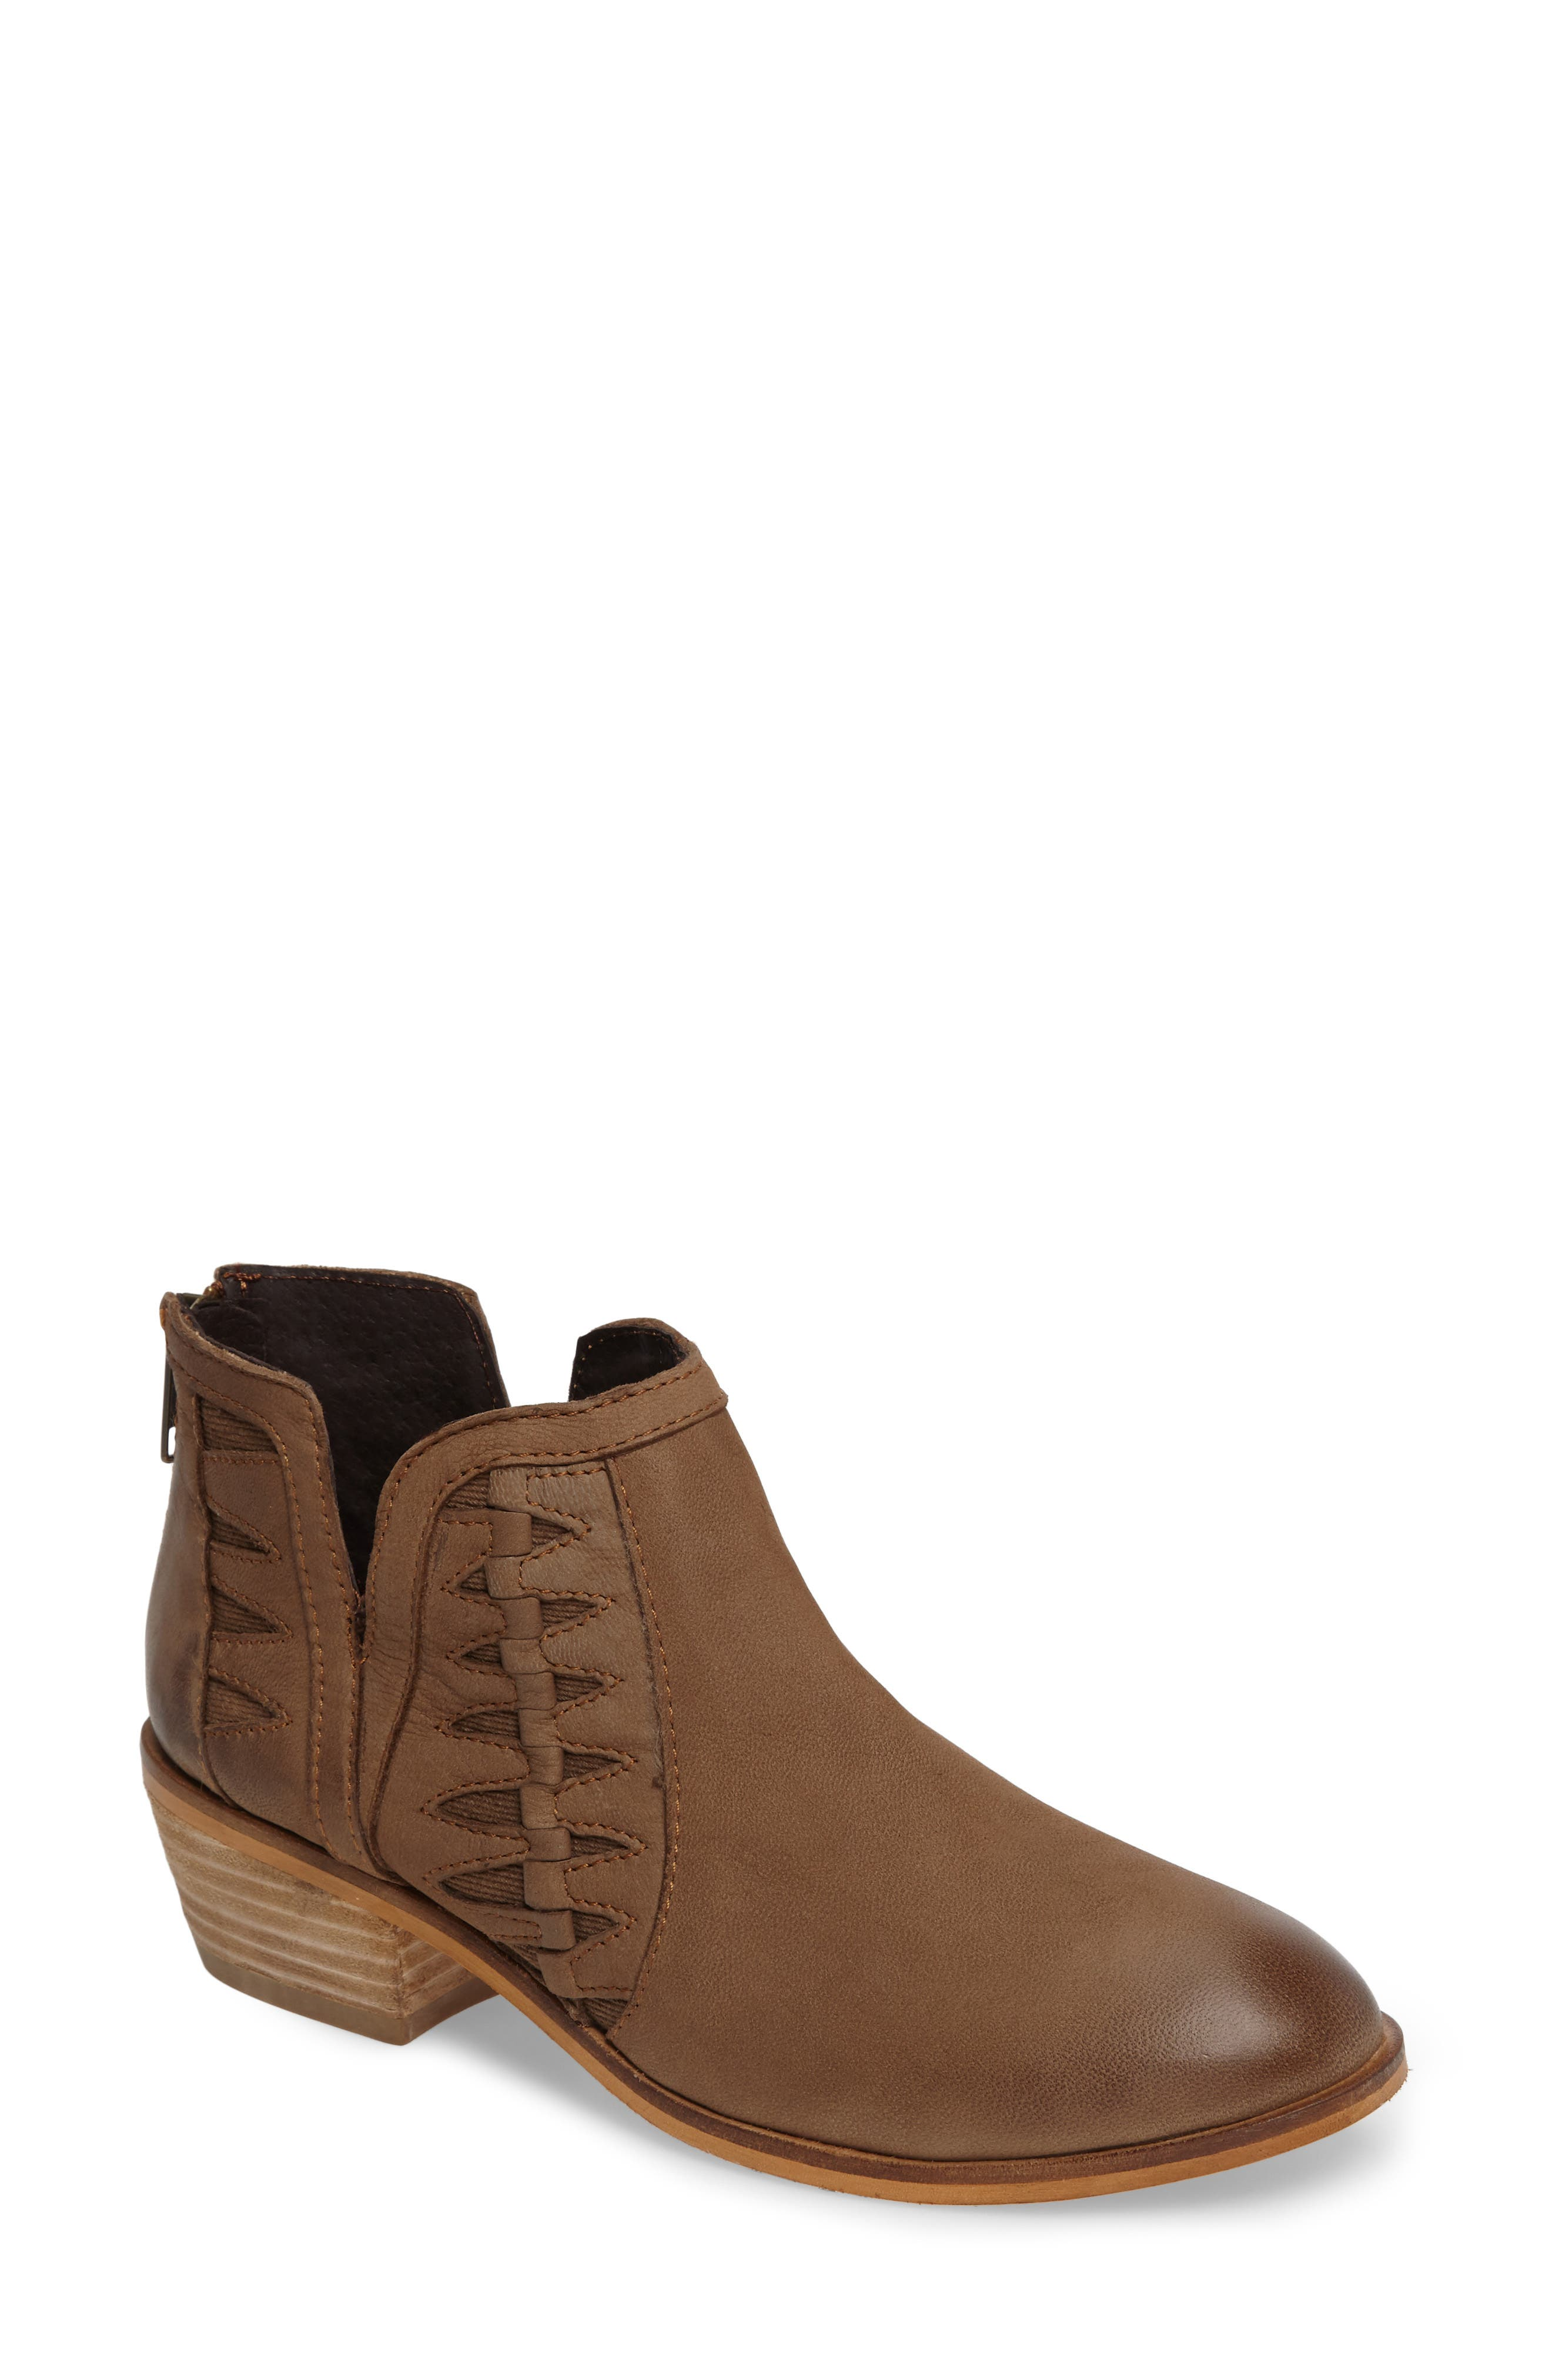 Yuma Bootie,                         Main,                         color, Cognac Washed Nubuck Leather